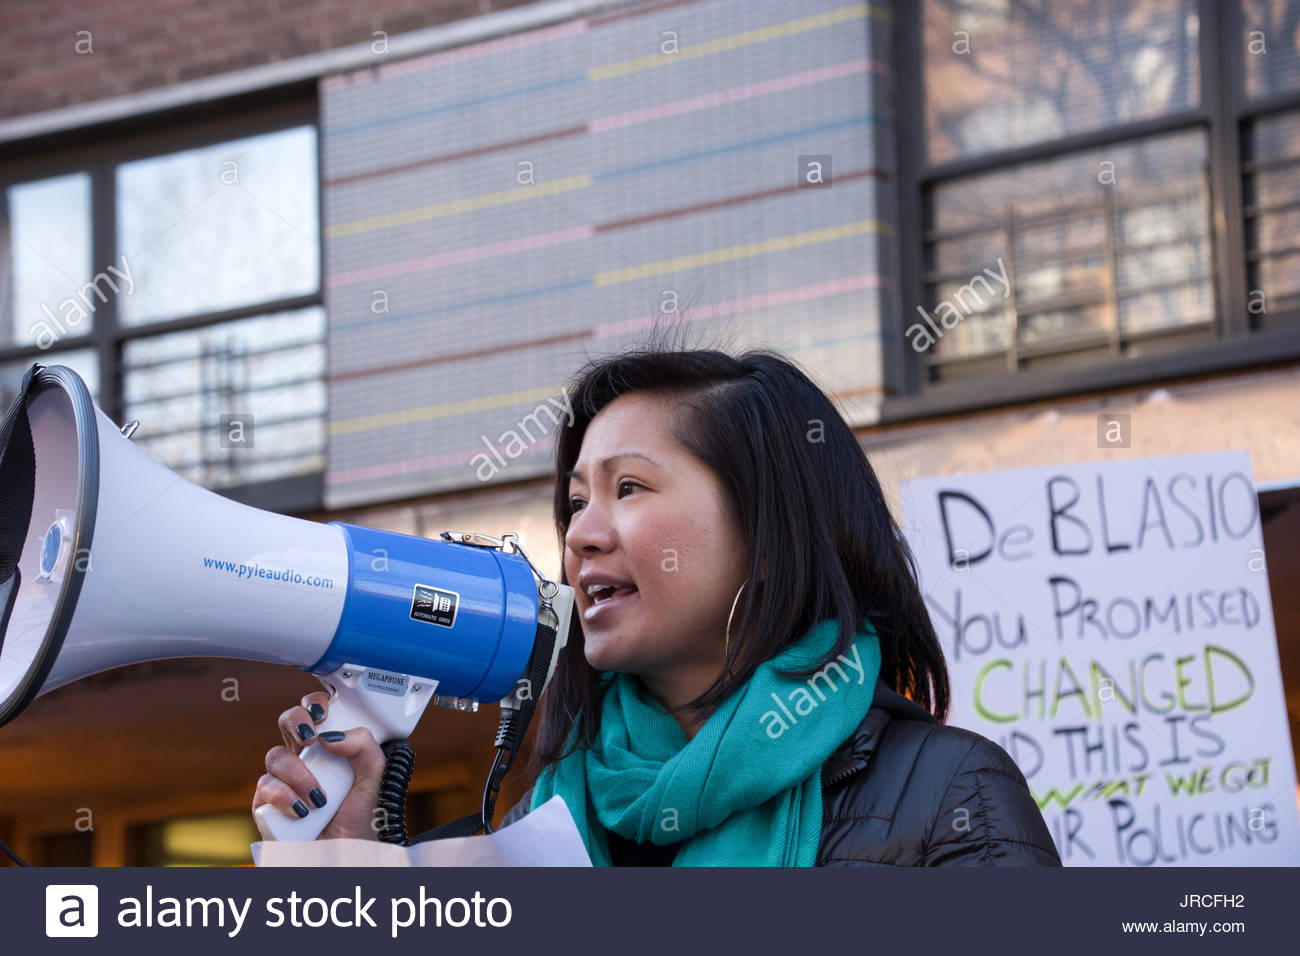 A Chinese-American activist speaks in protest over the shooting death of Akai Gurley, shot by Chinese-American NYPD rookie officer Peter Liang. - Stock Image